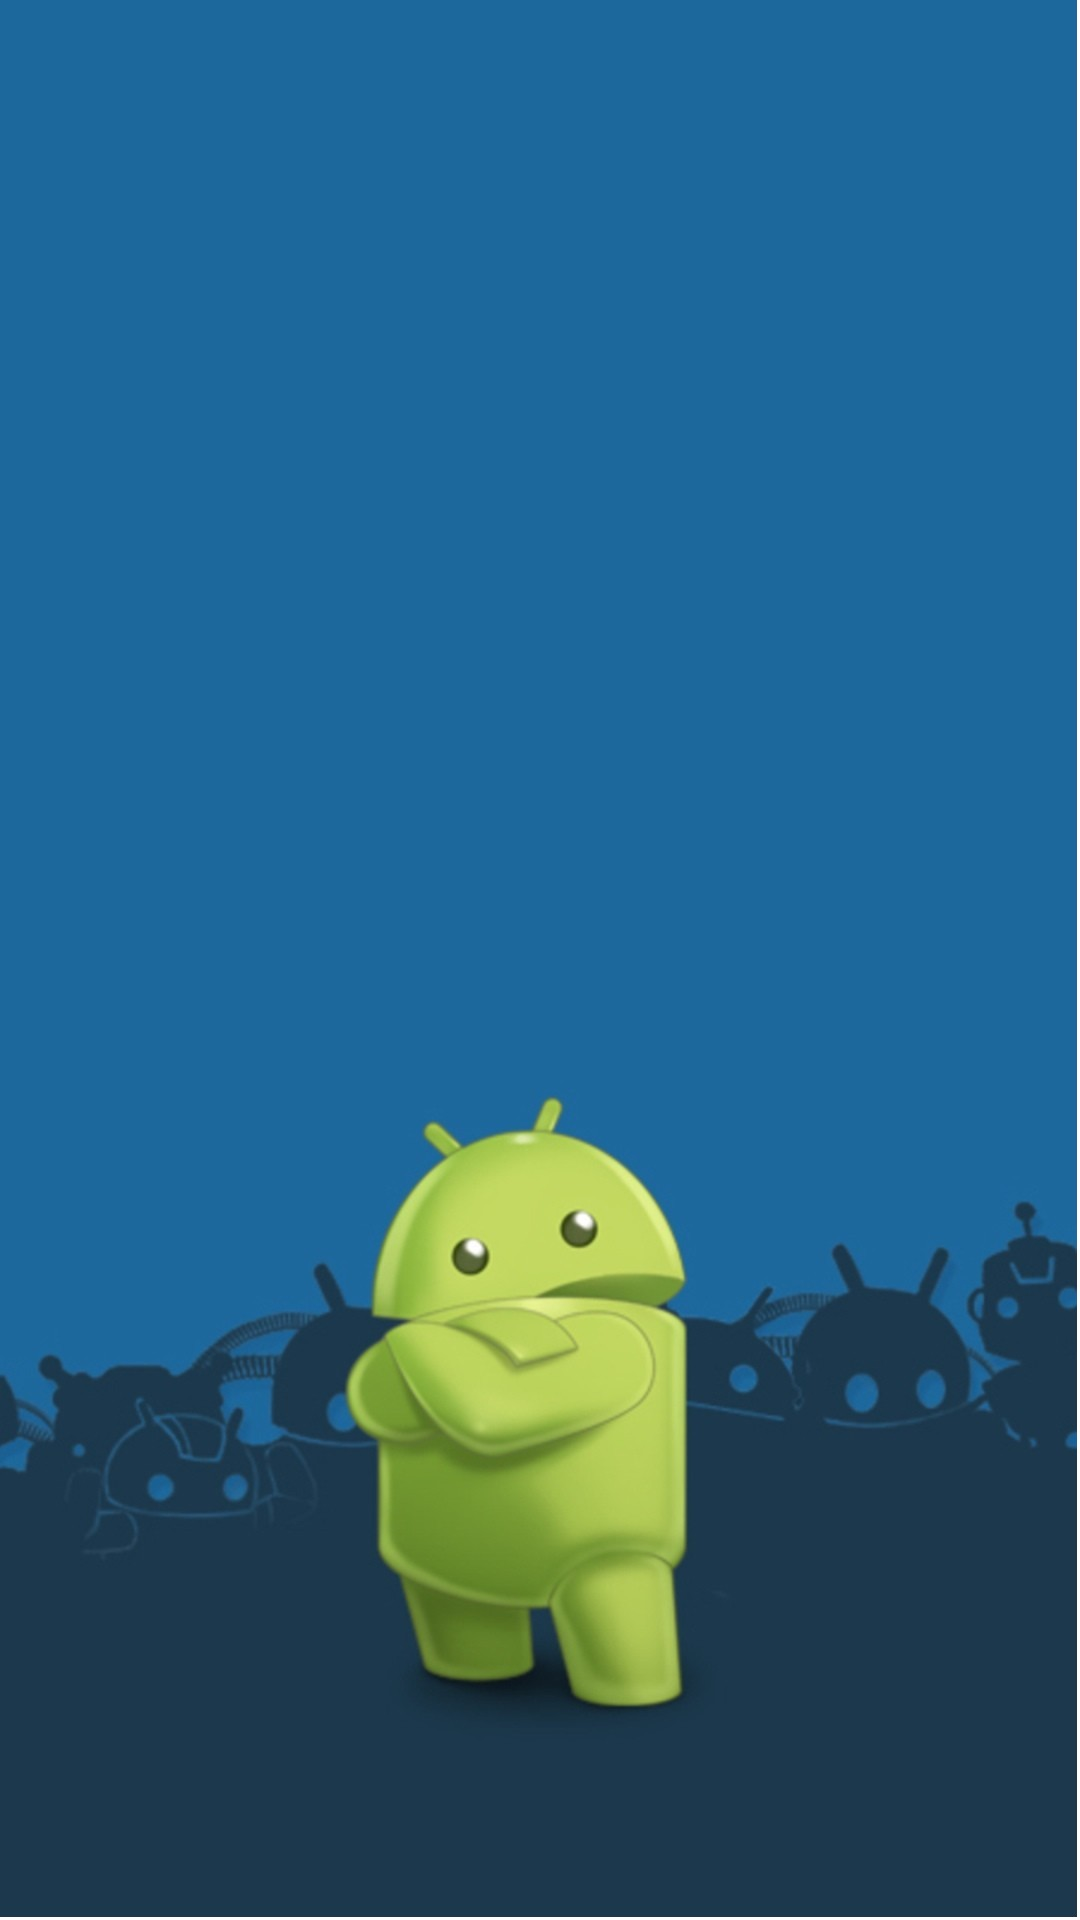 samsung galaxy s4 wallpapers wallpapers android logo